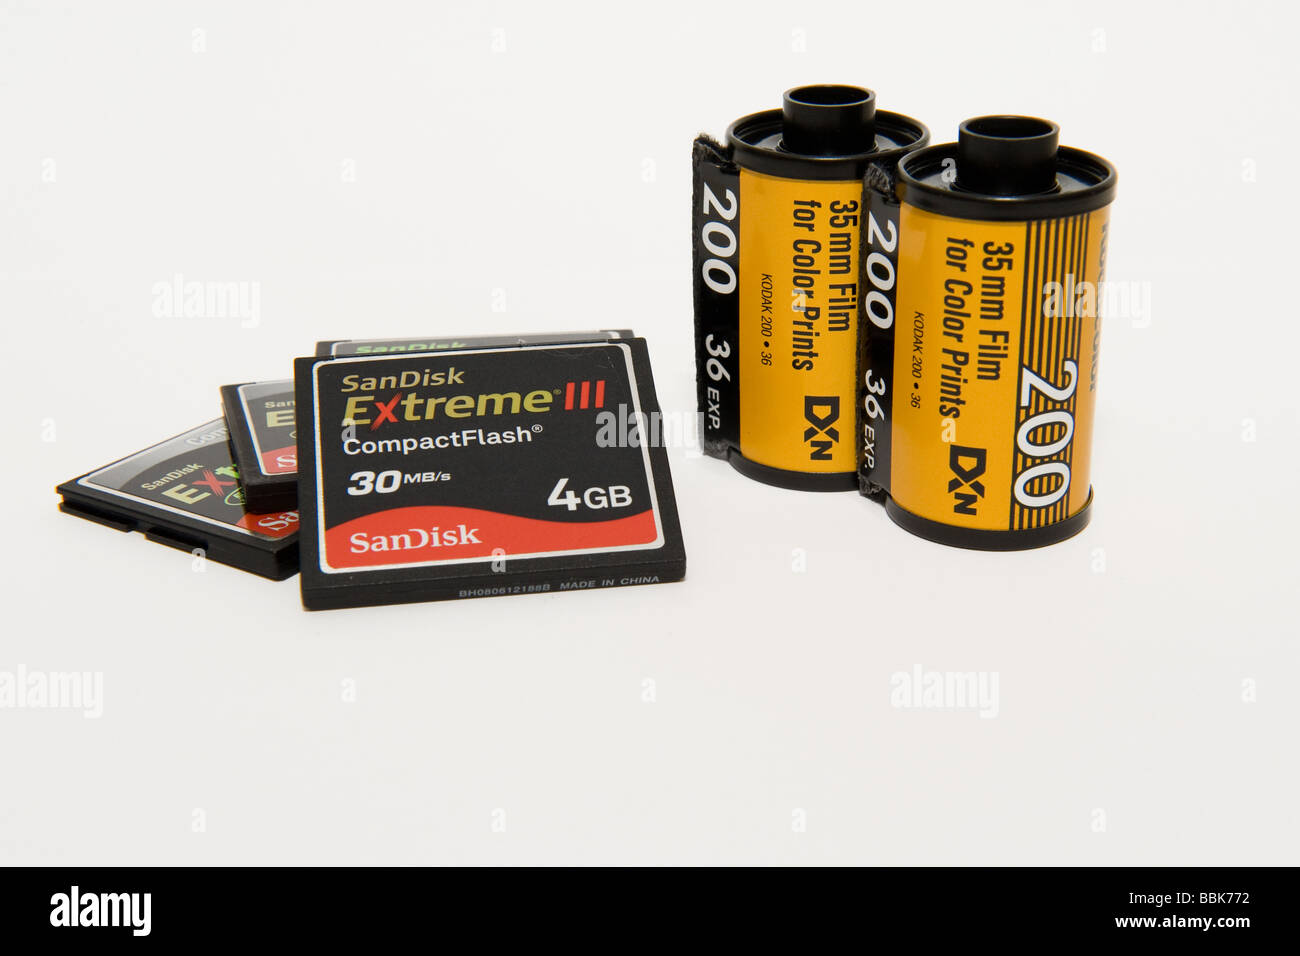 New generation high speed memory cards (CF) and 'old fashioned' 35mm film canisters/boxes. - Stock Image